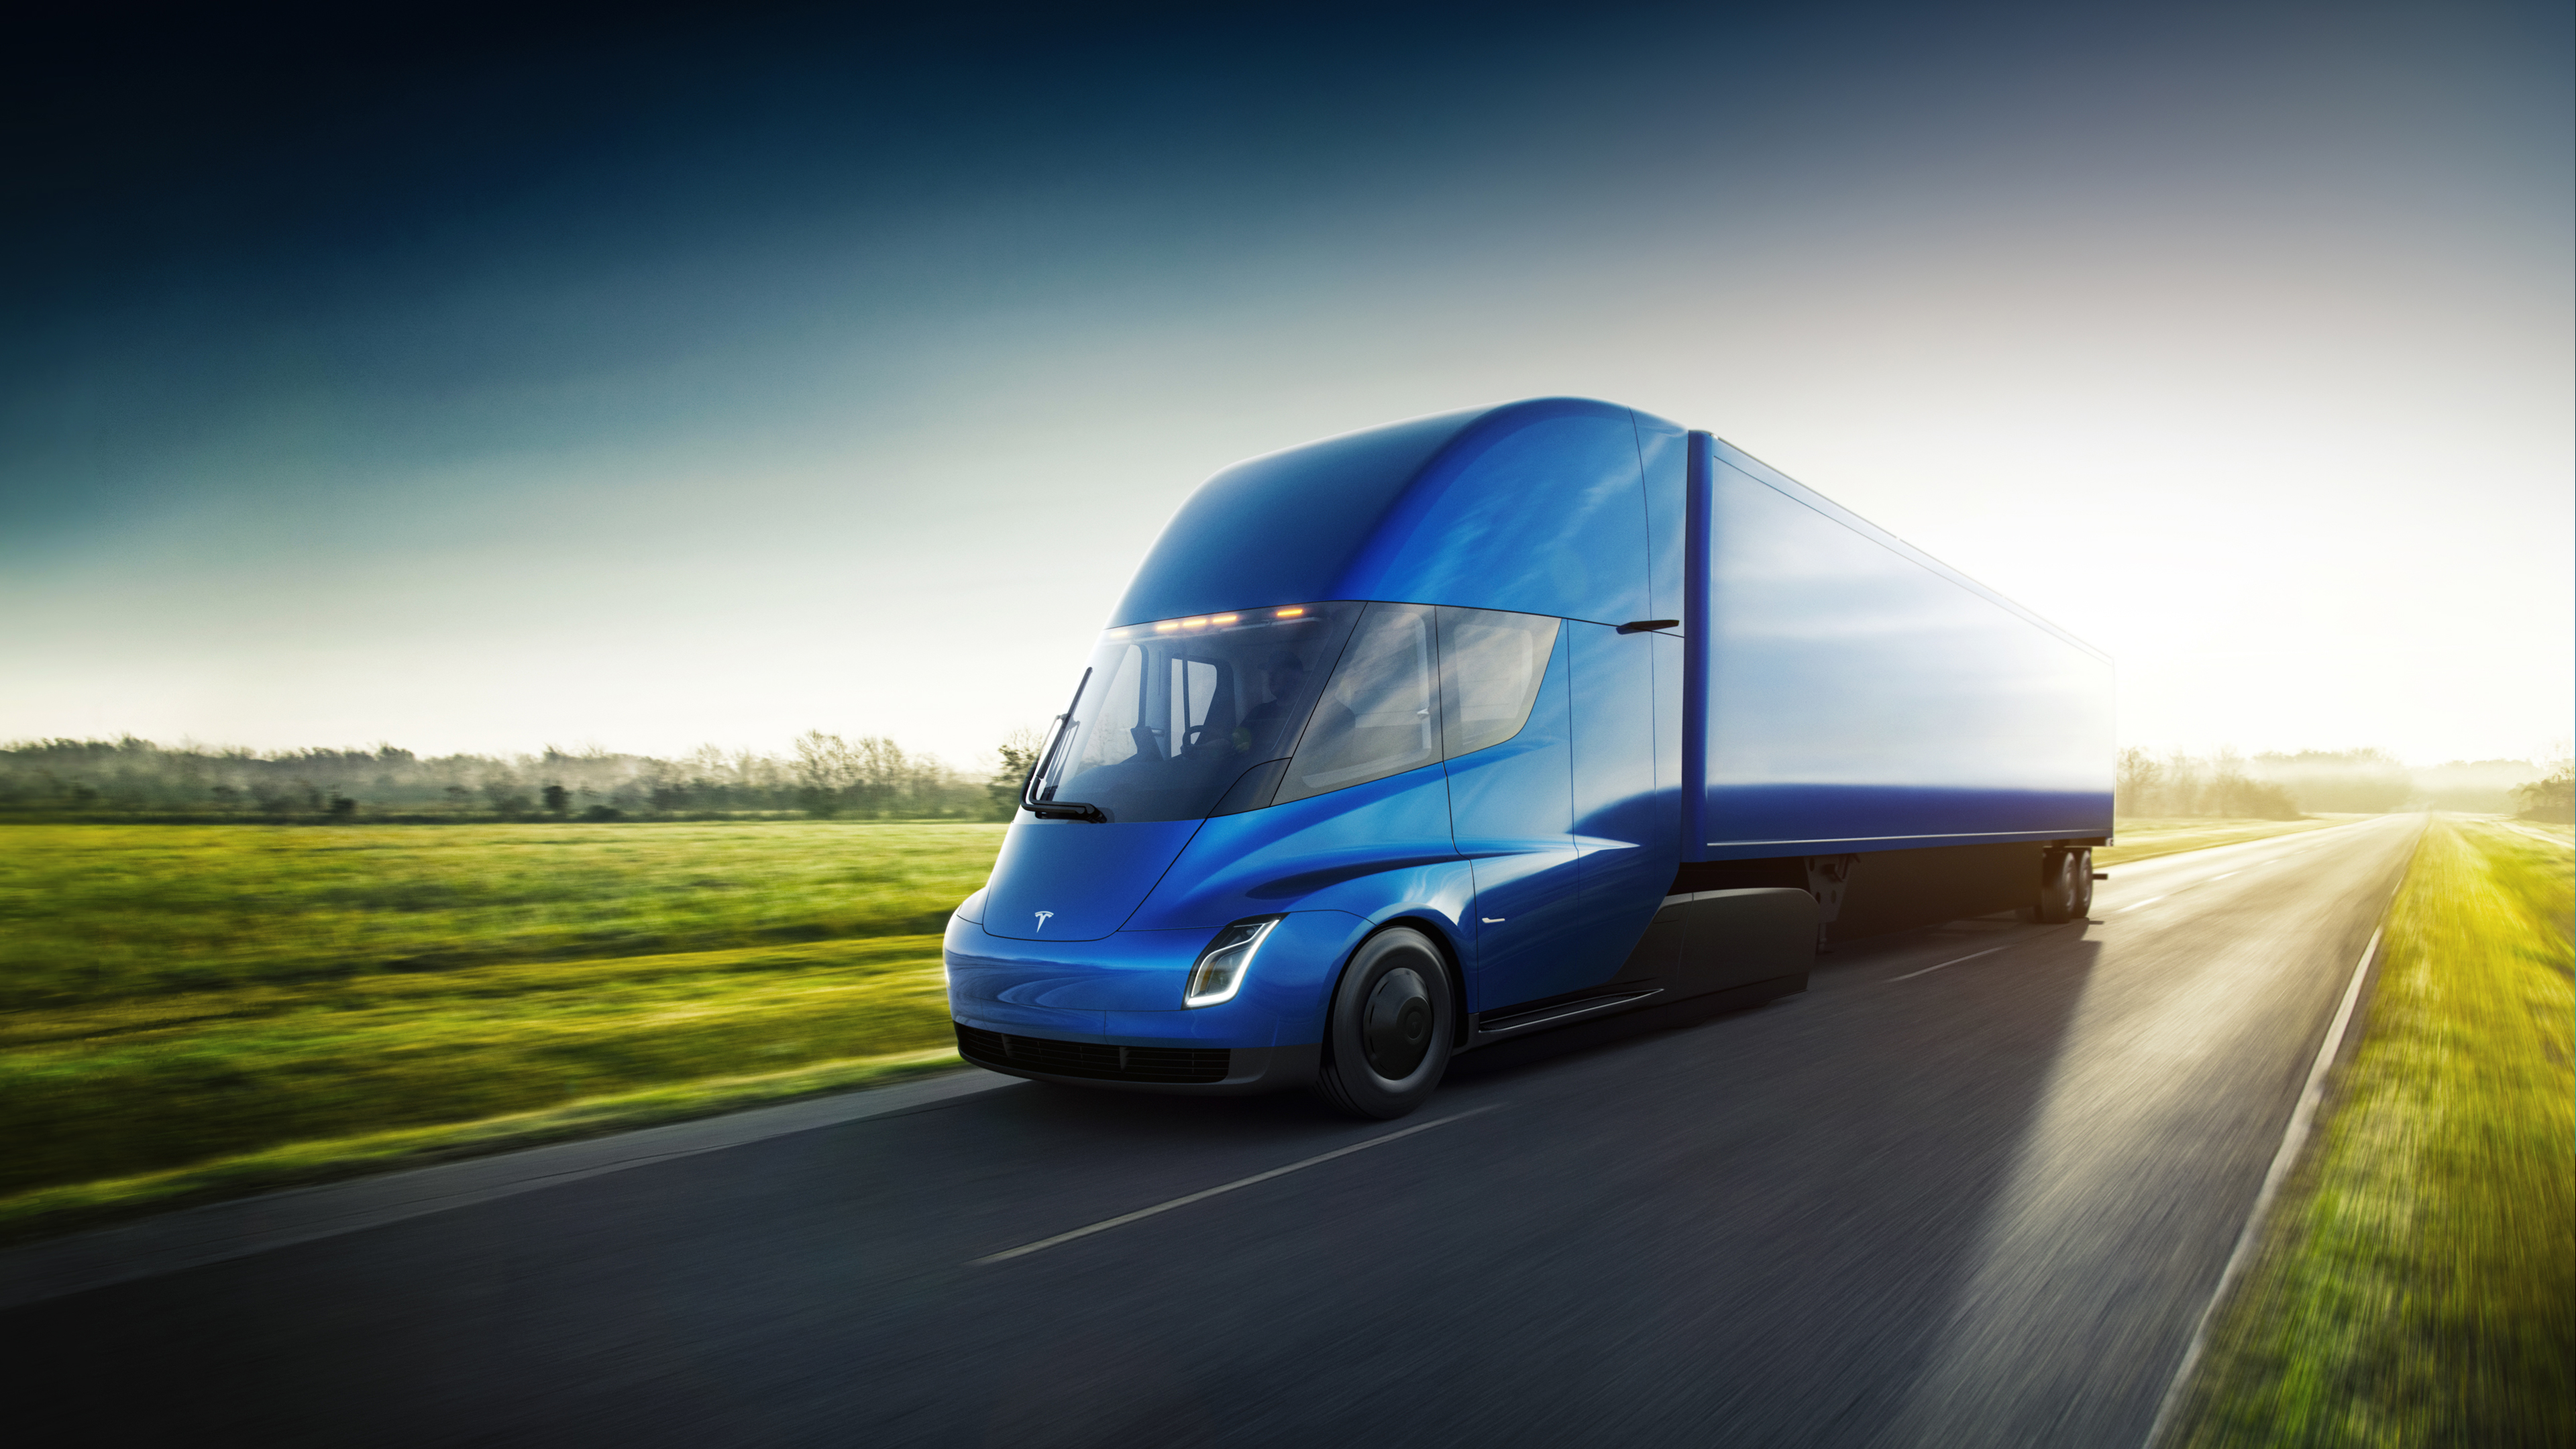 Tesla's new semi-truck will go into production in 2019, the company says. It was unveiled Thursday, Nov. 16, 2017 by CEO Elon Musk.